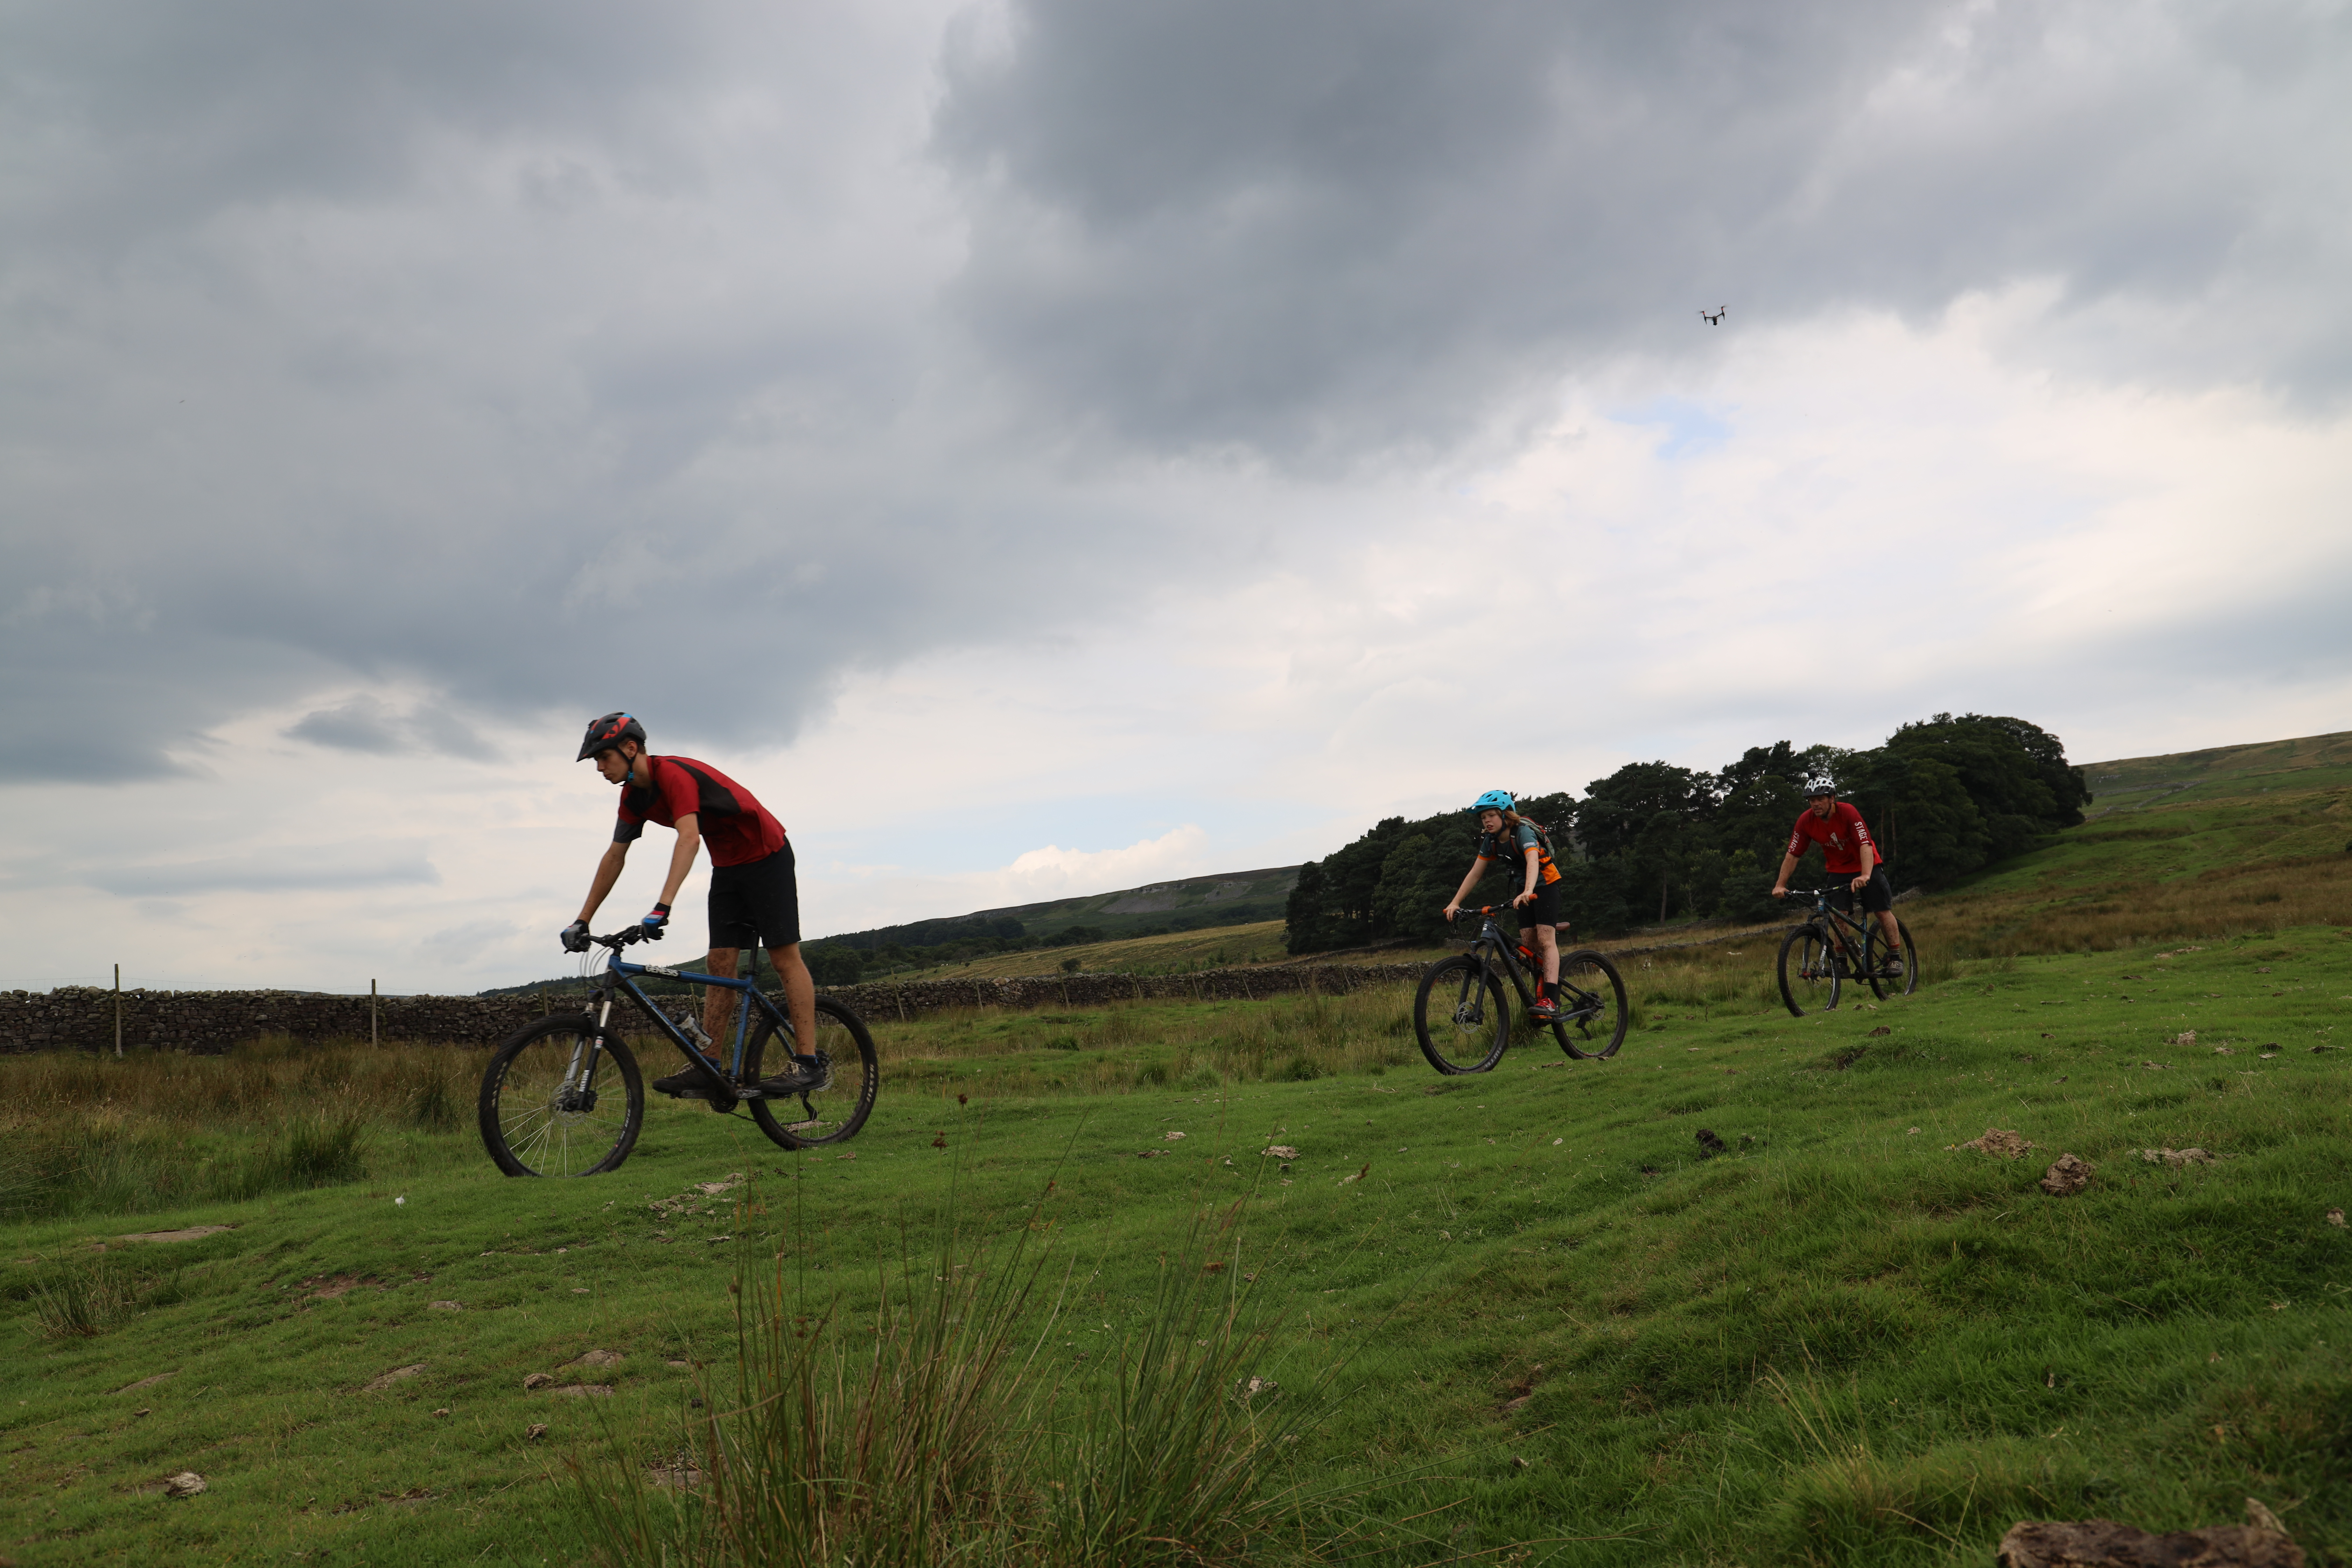 Three mountain bikers ride down a grassy hill in the Dales, for Cycle the Dales promotional video with Pocket Projects